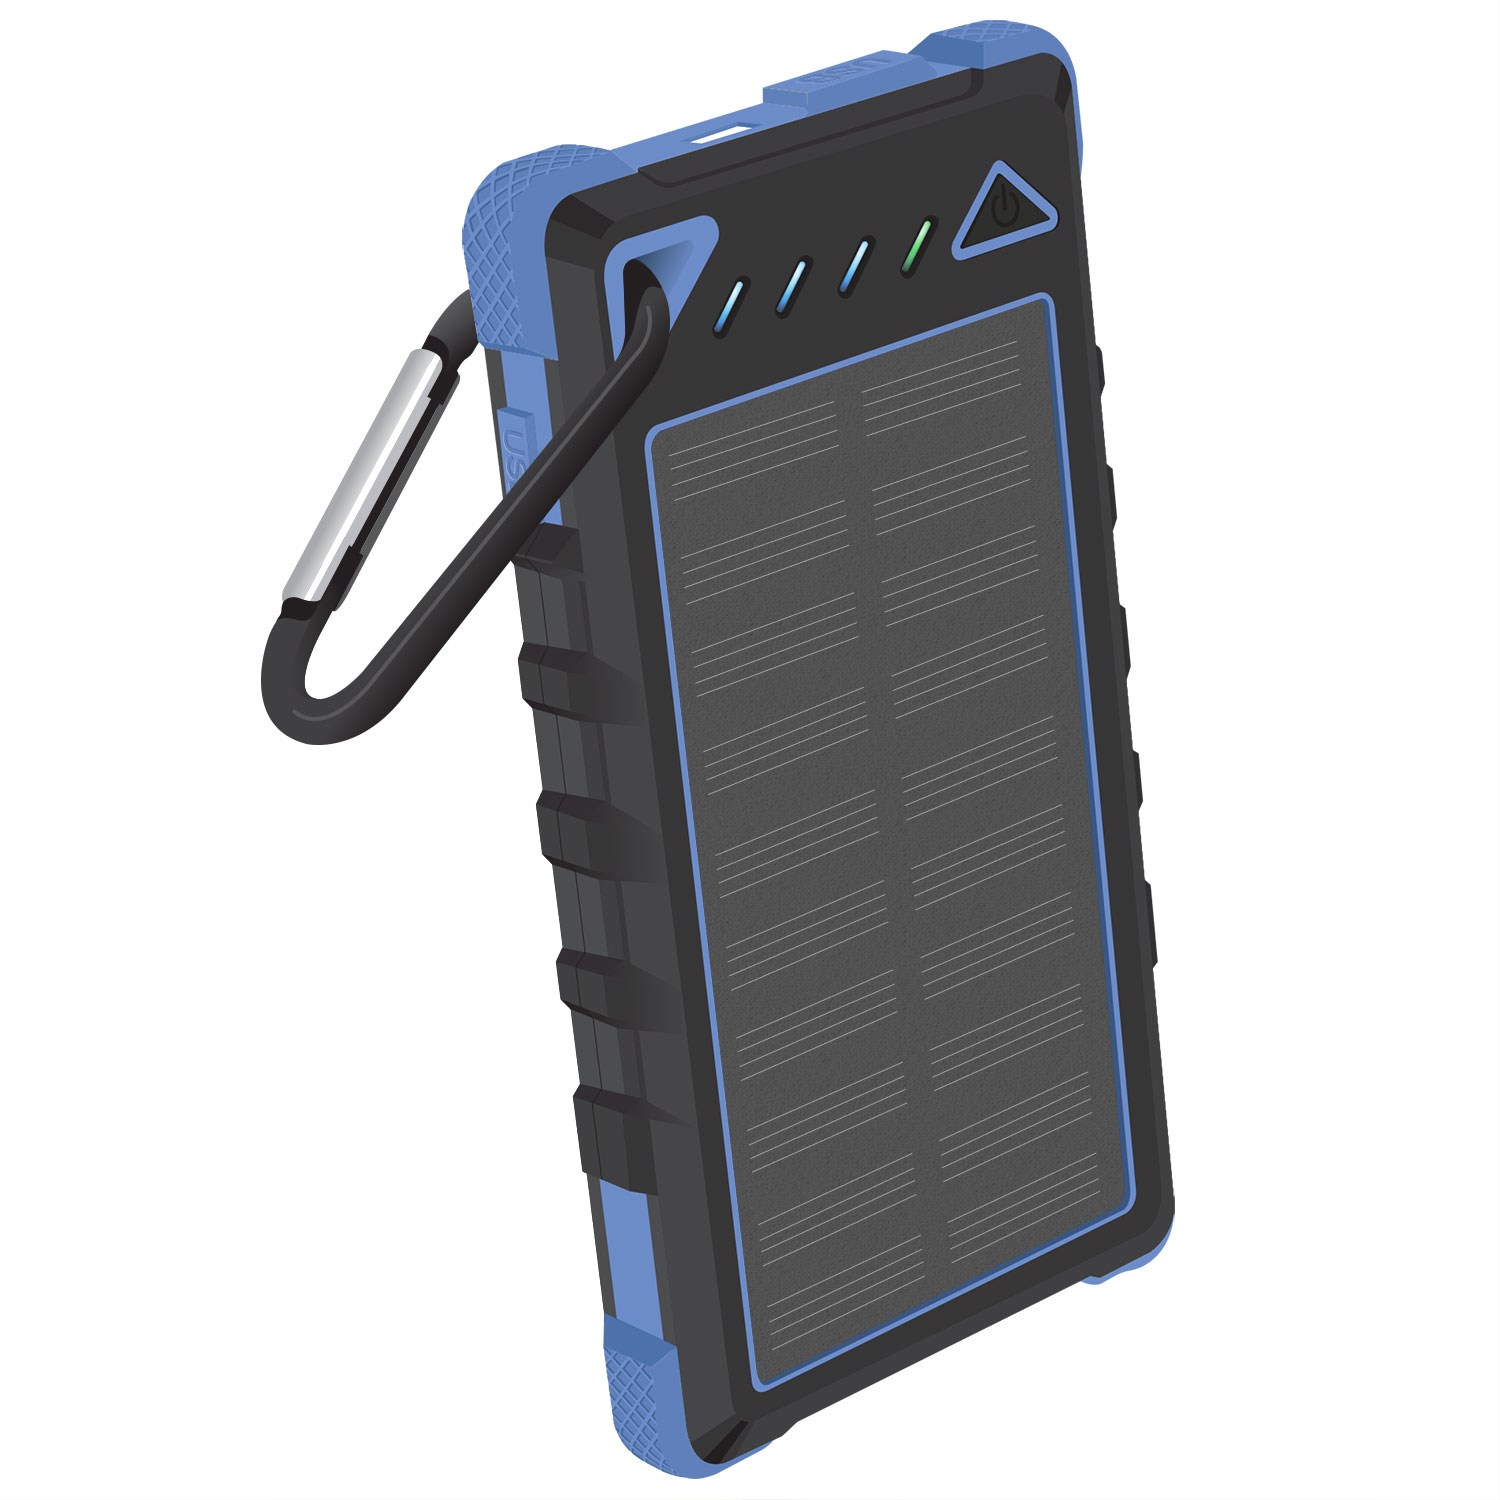 LG A340 Solar Powered Portable PowerBank Blue